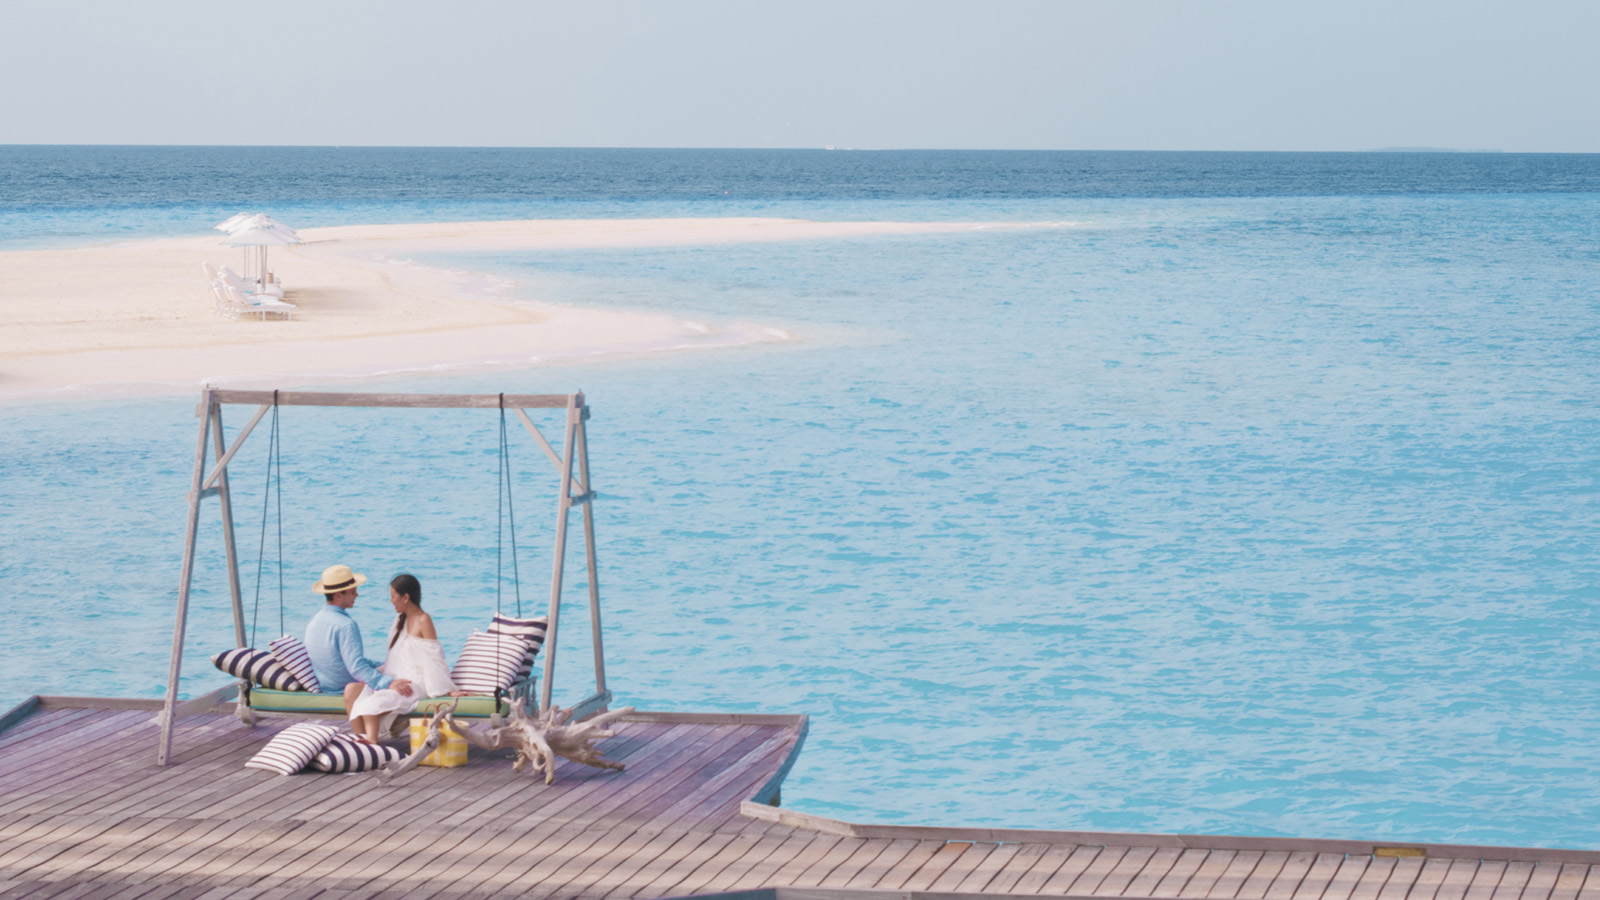 Island Romance Package Offered at Four Seasons Resort Maldives at Landaa Giraavaru, a Luxury Resort in the Maldives